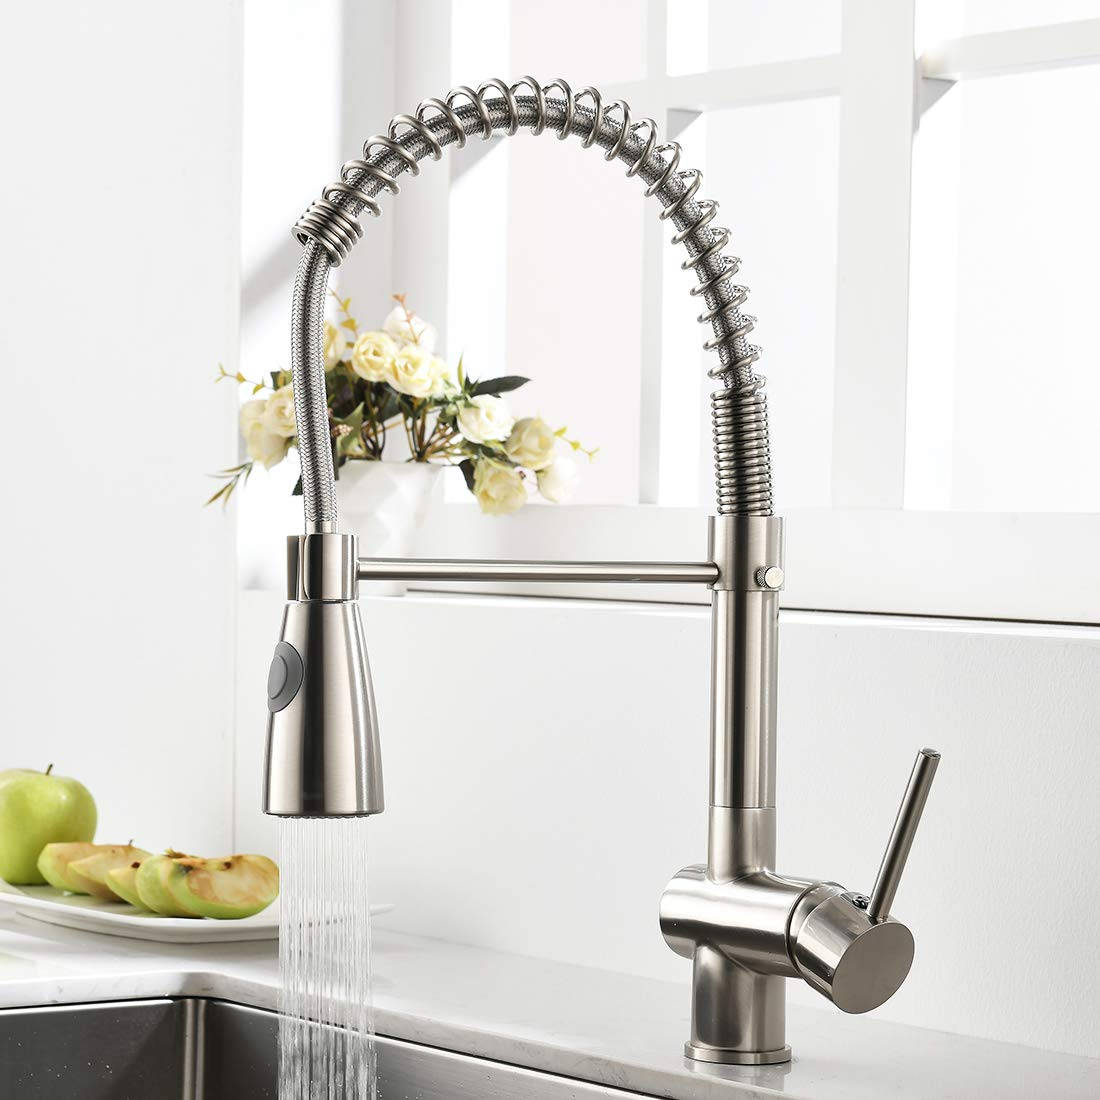 Gimili Commercial Kitchen Faucet With Pull Down Sprayer Single Handle Spring High Arc Pull Out Spray Stainless Steel Kitchen Sink Faucet Brushed Nickel